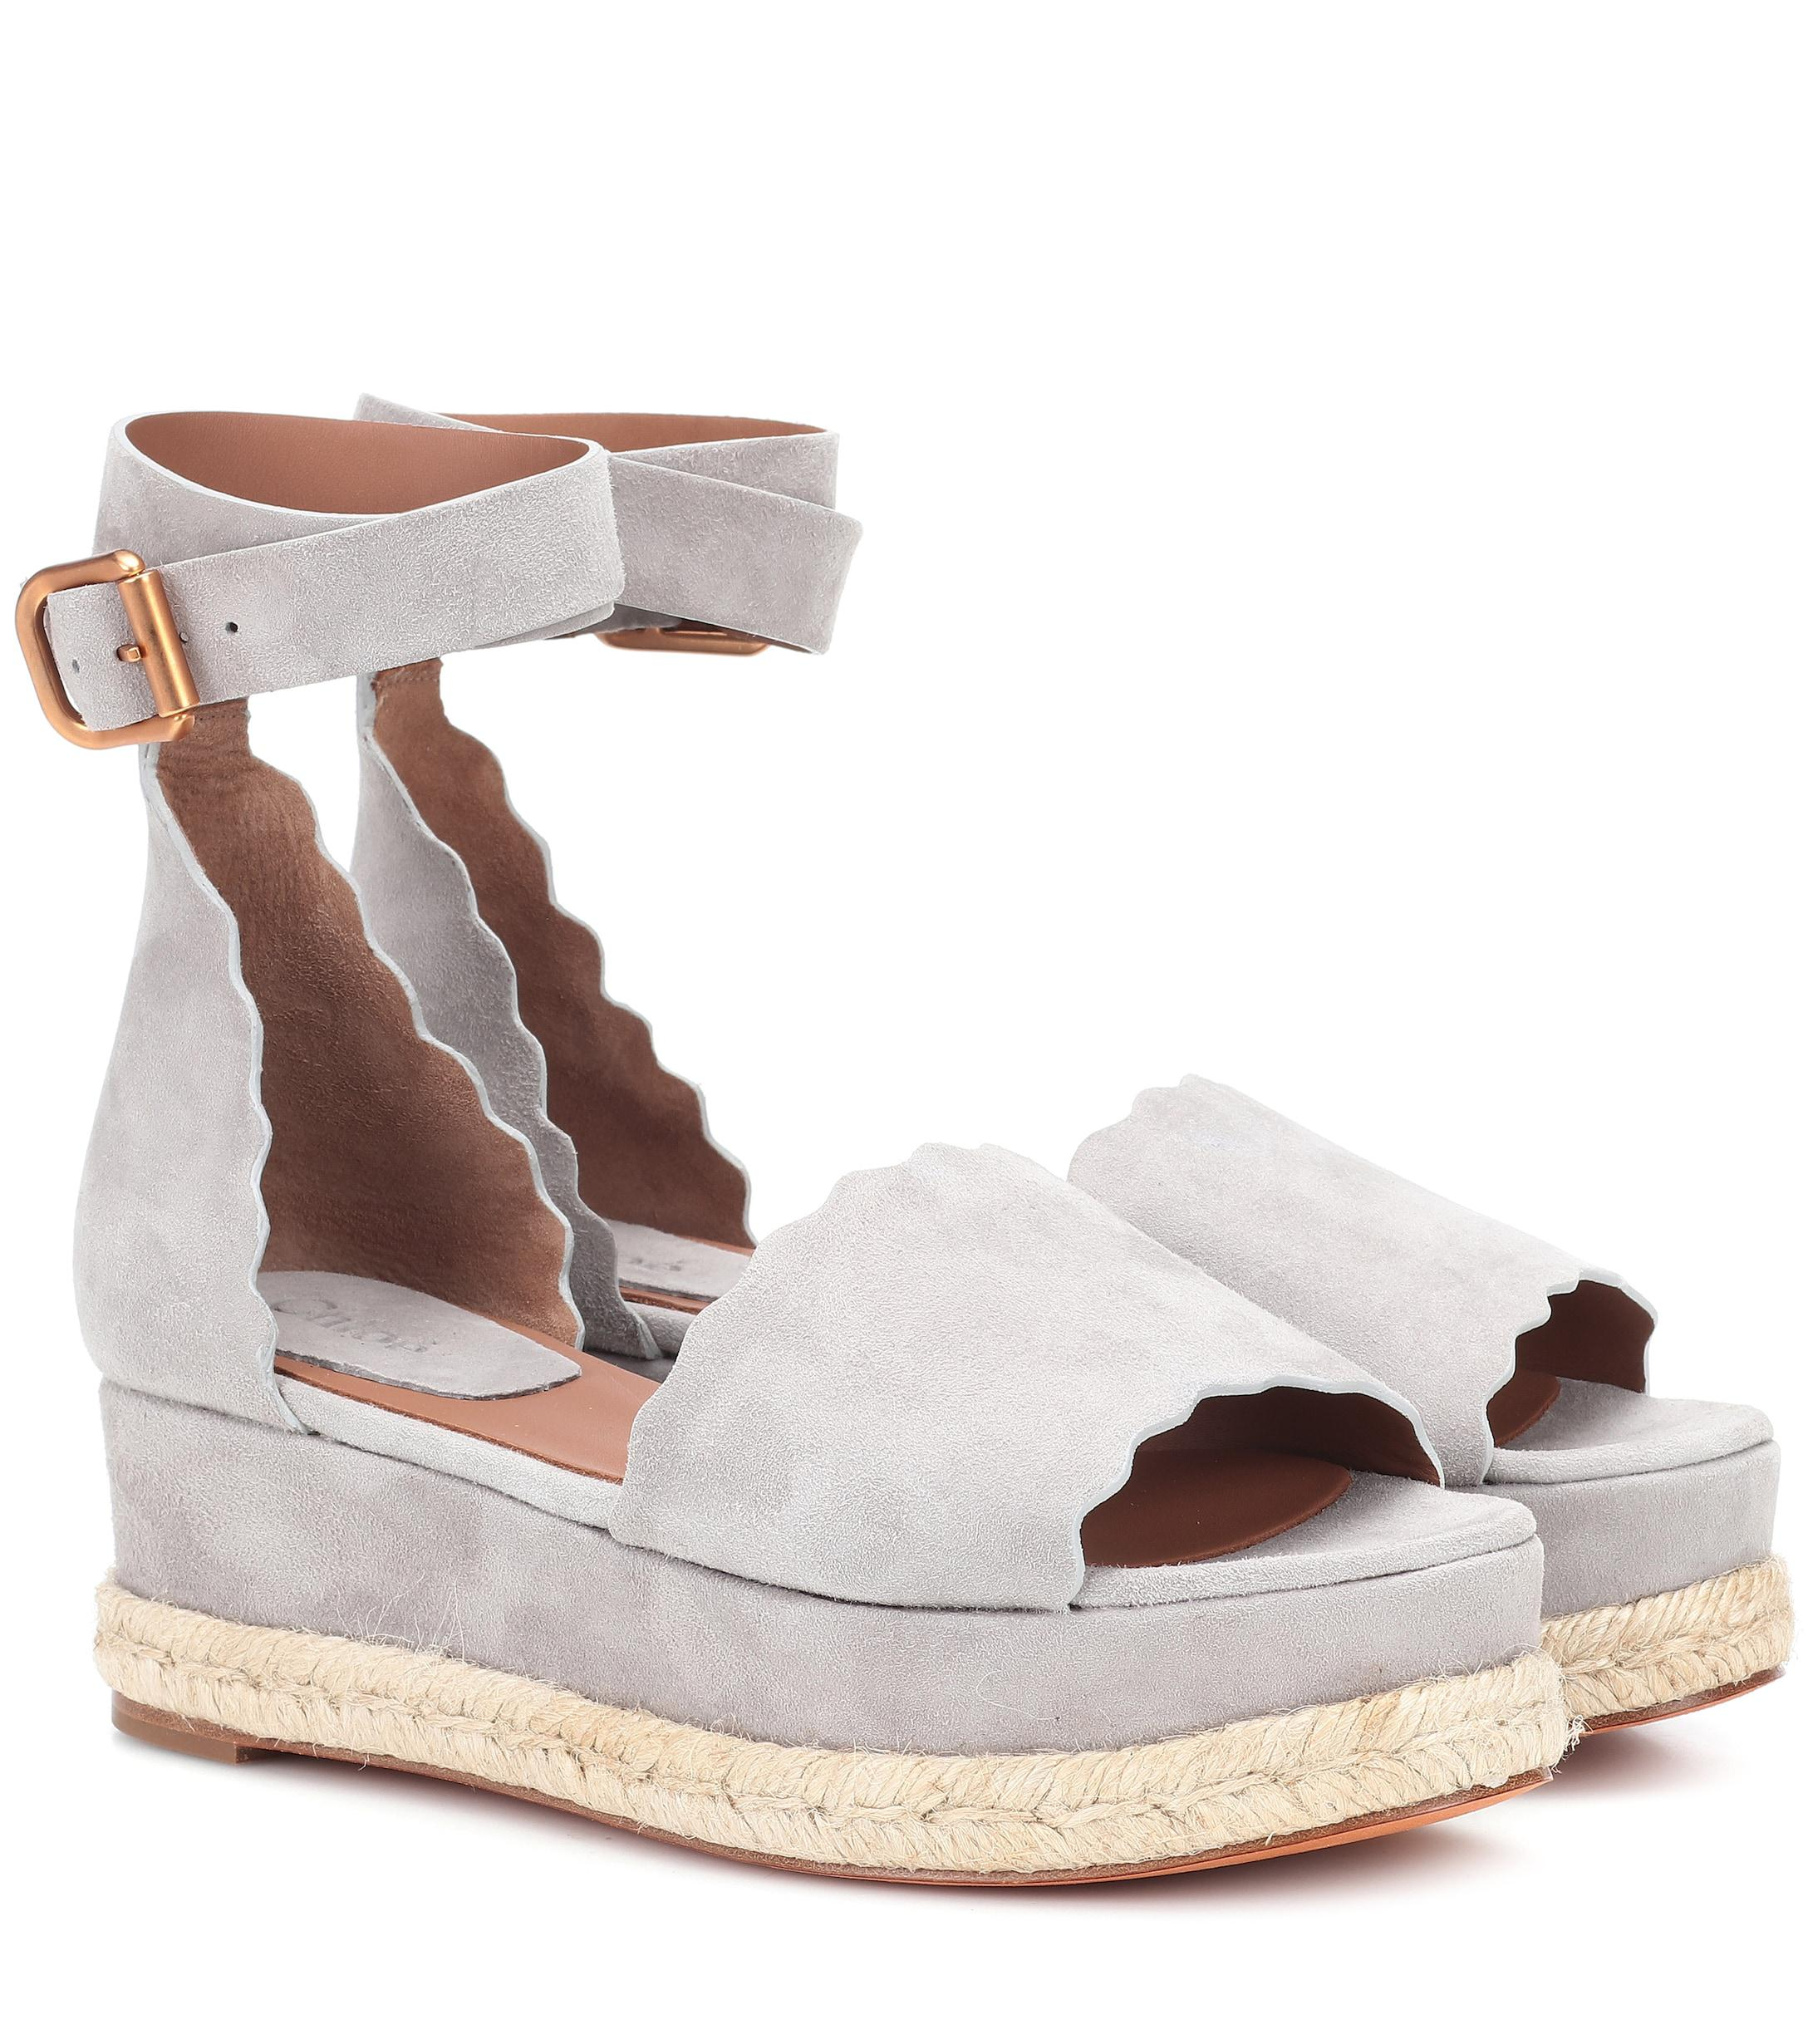 a2a100449969 Chloé Lauren Suede Platform Sandals in Gray - Save 30% - Lyst